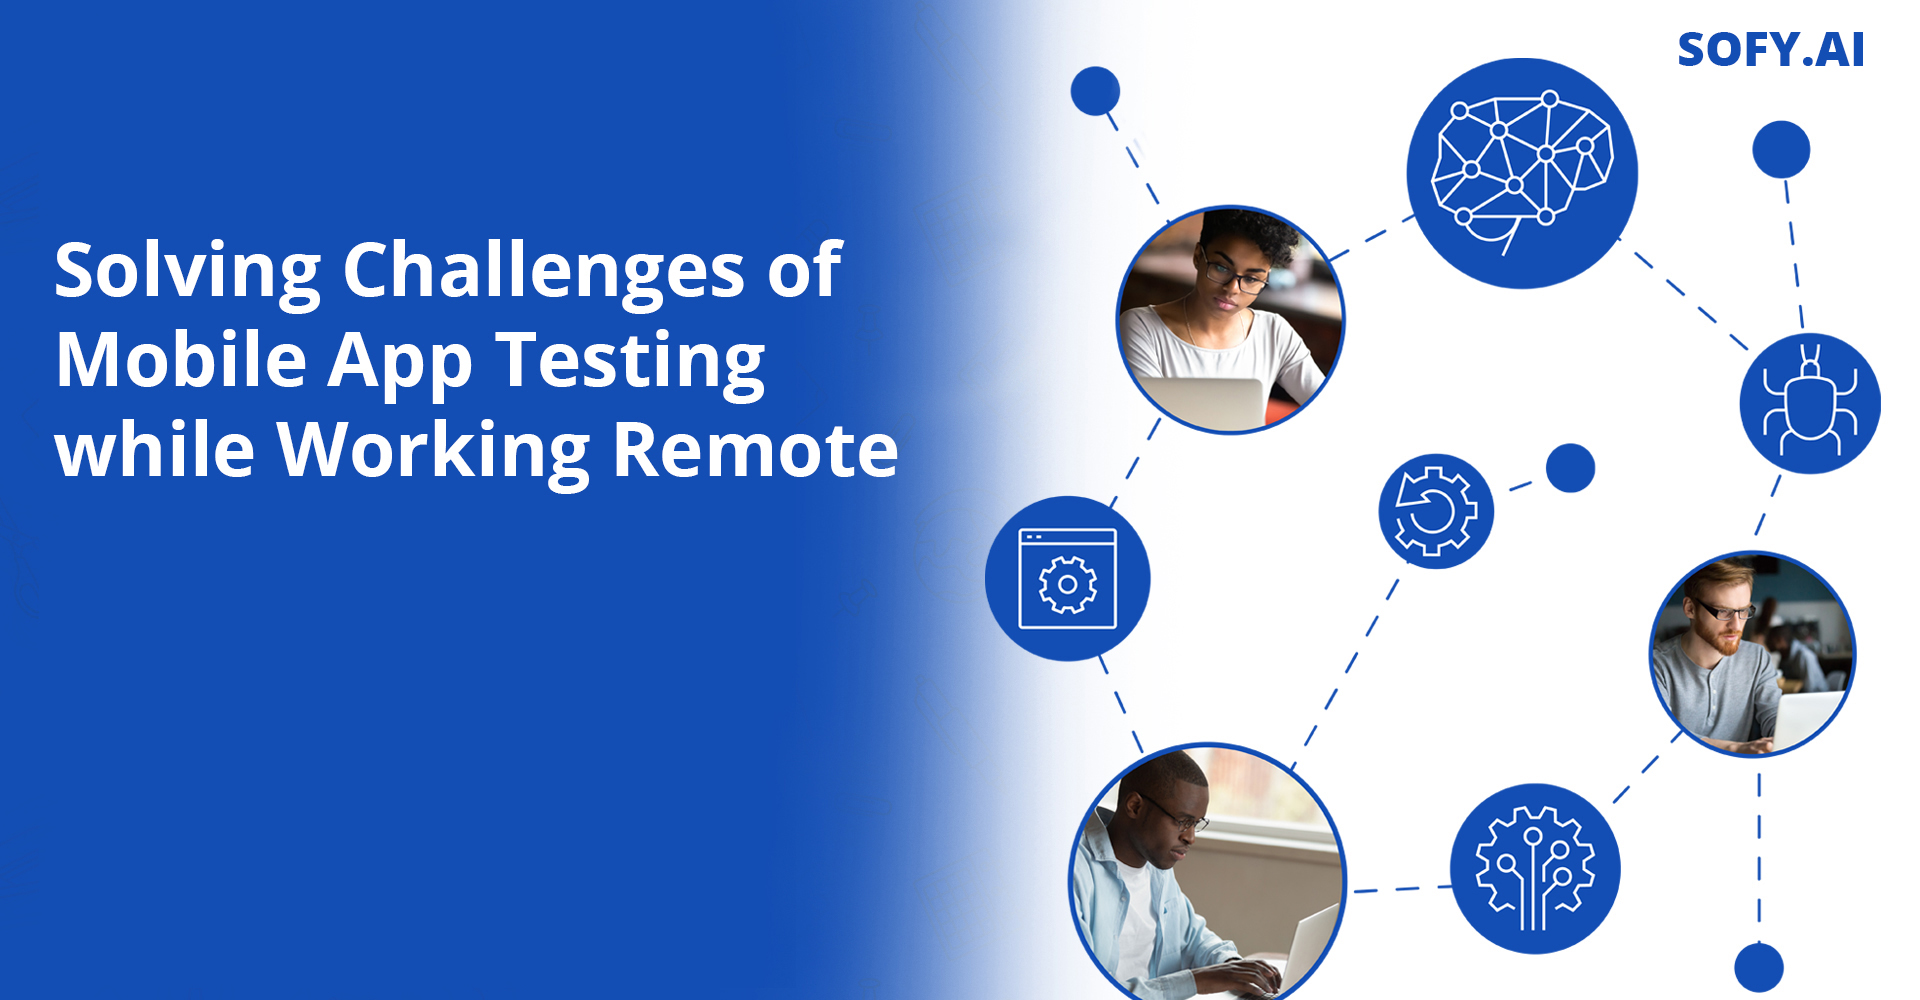 Solving Challenges of Mobile App Testing while Working Remote